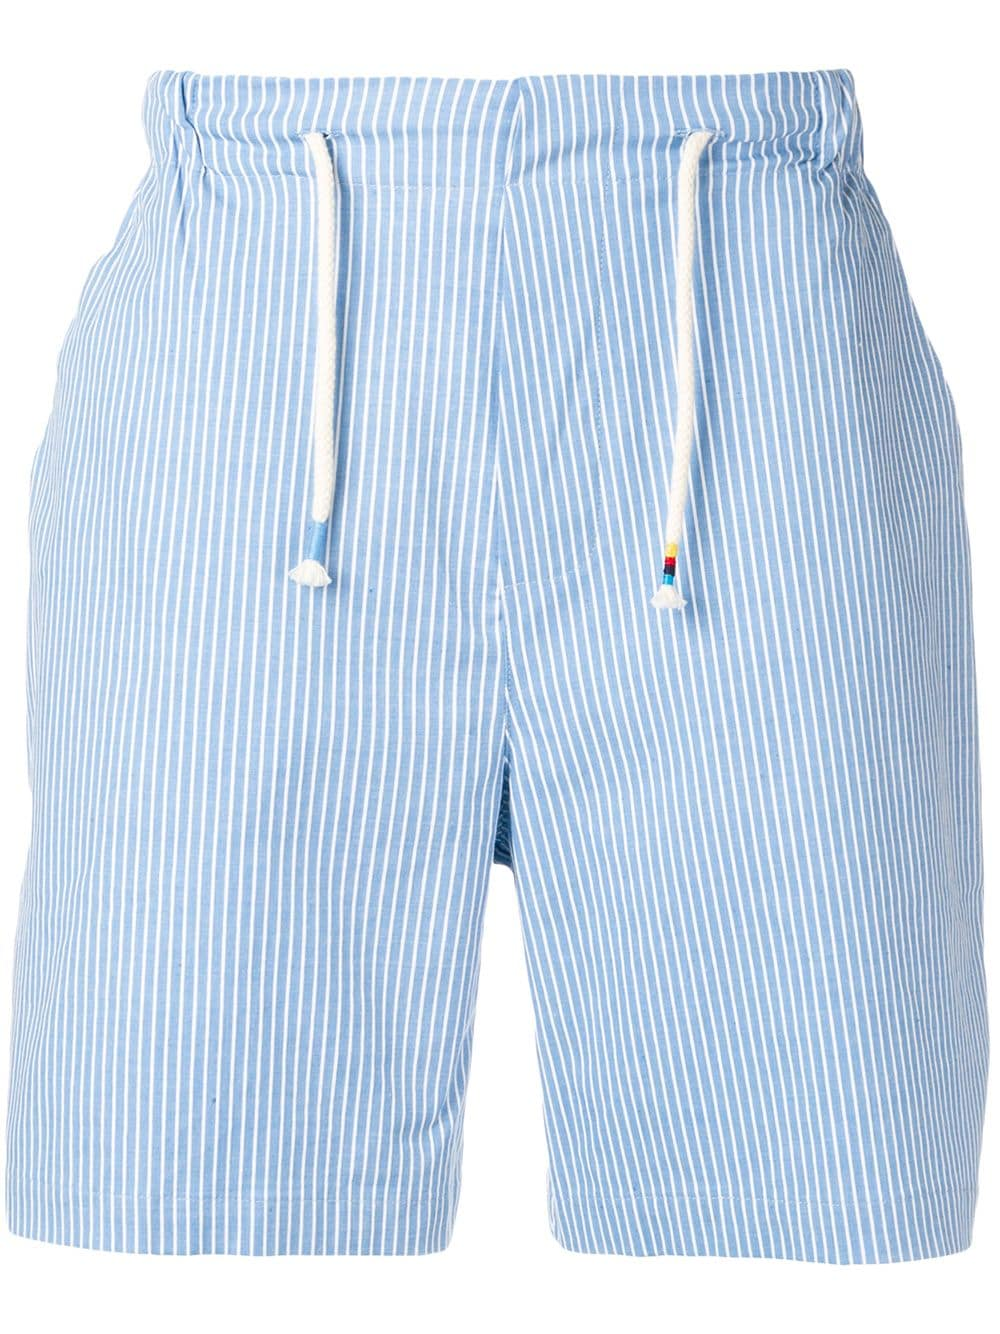 a2f7f1e828 The Silted Company pinstripe shorts - Blue in 2019   Products ...